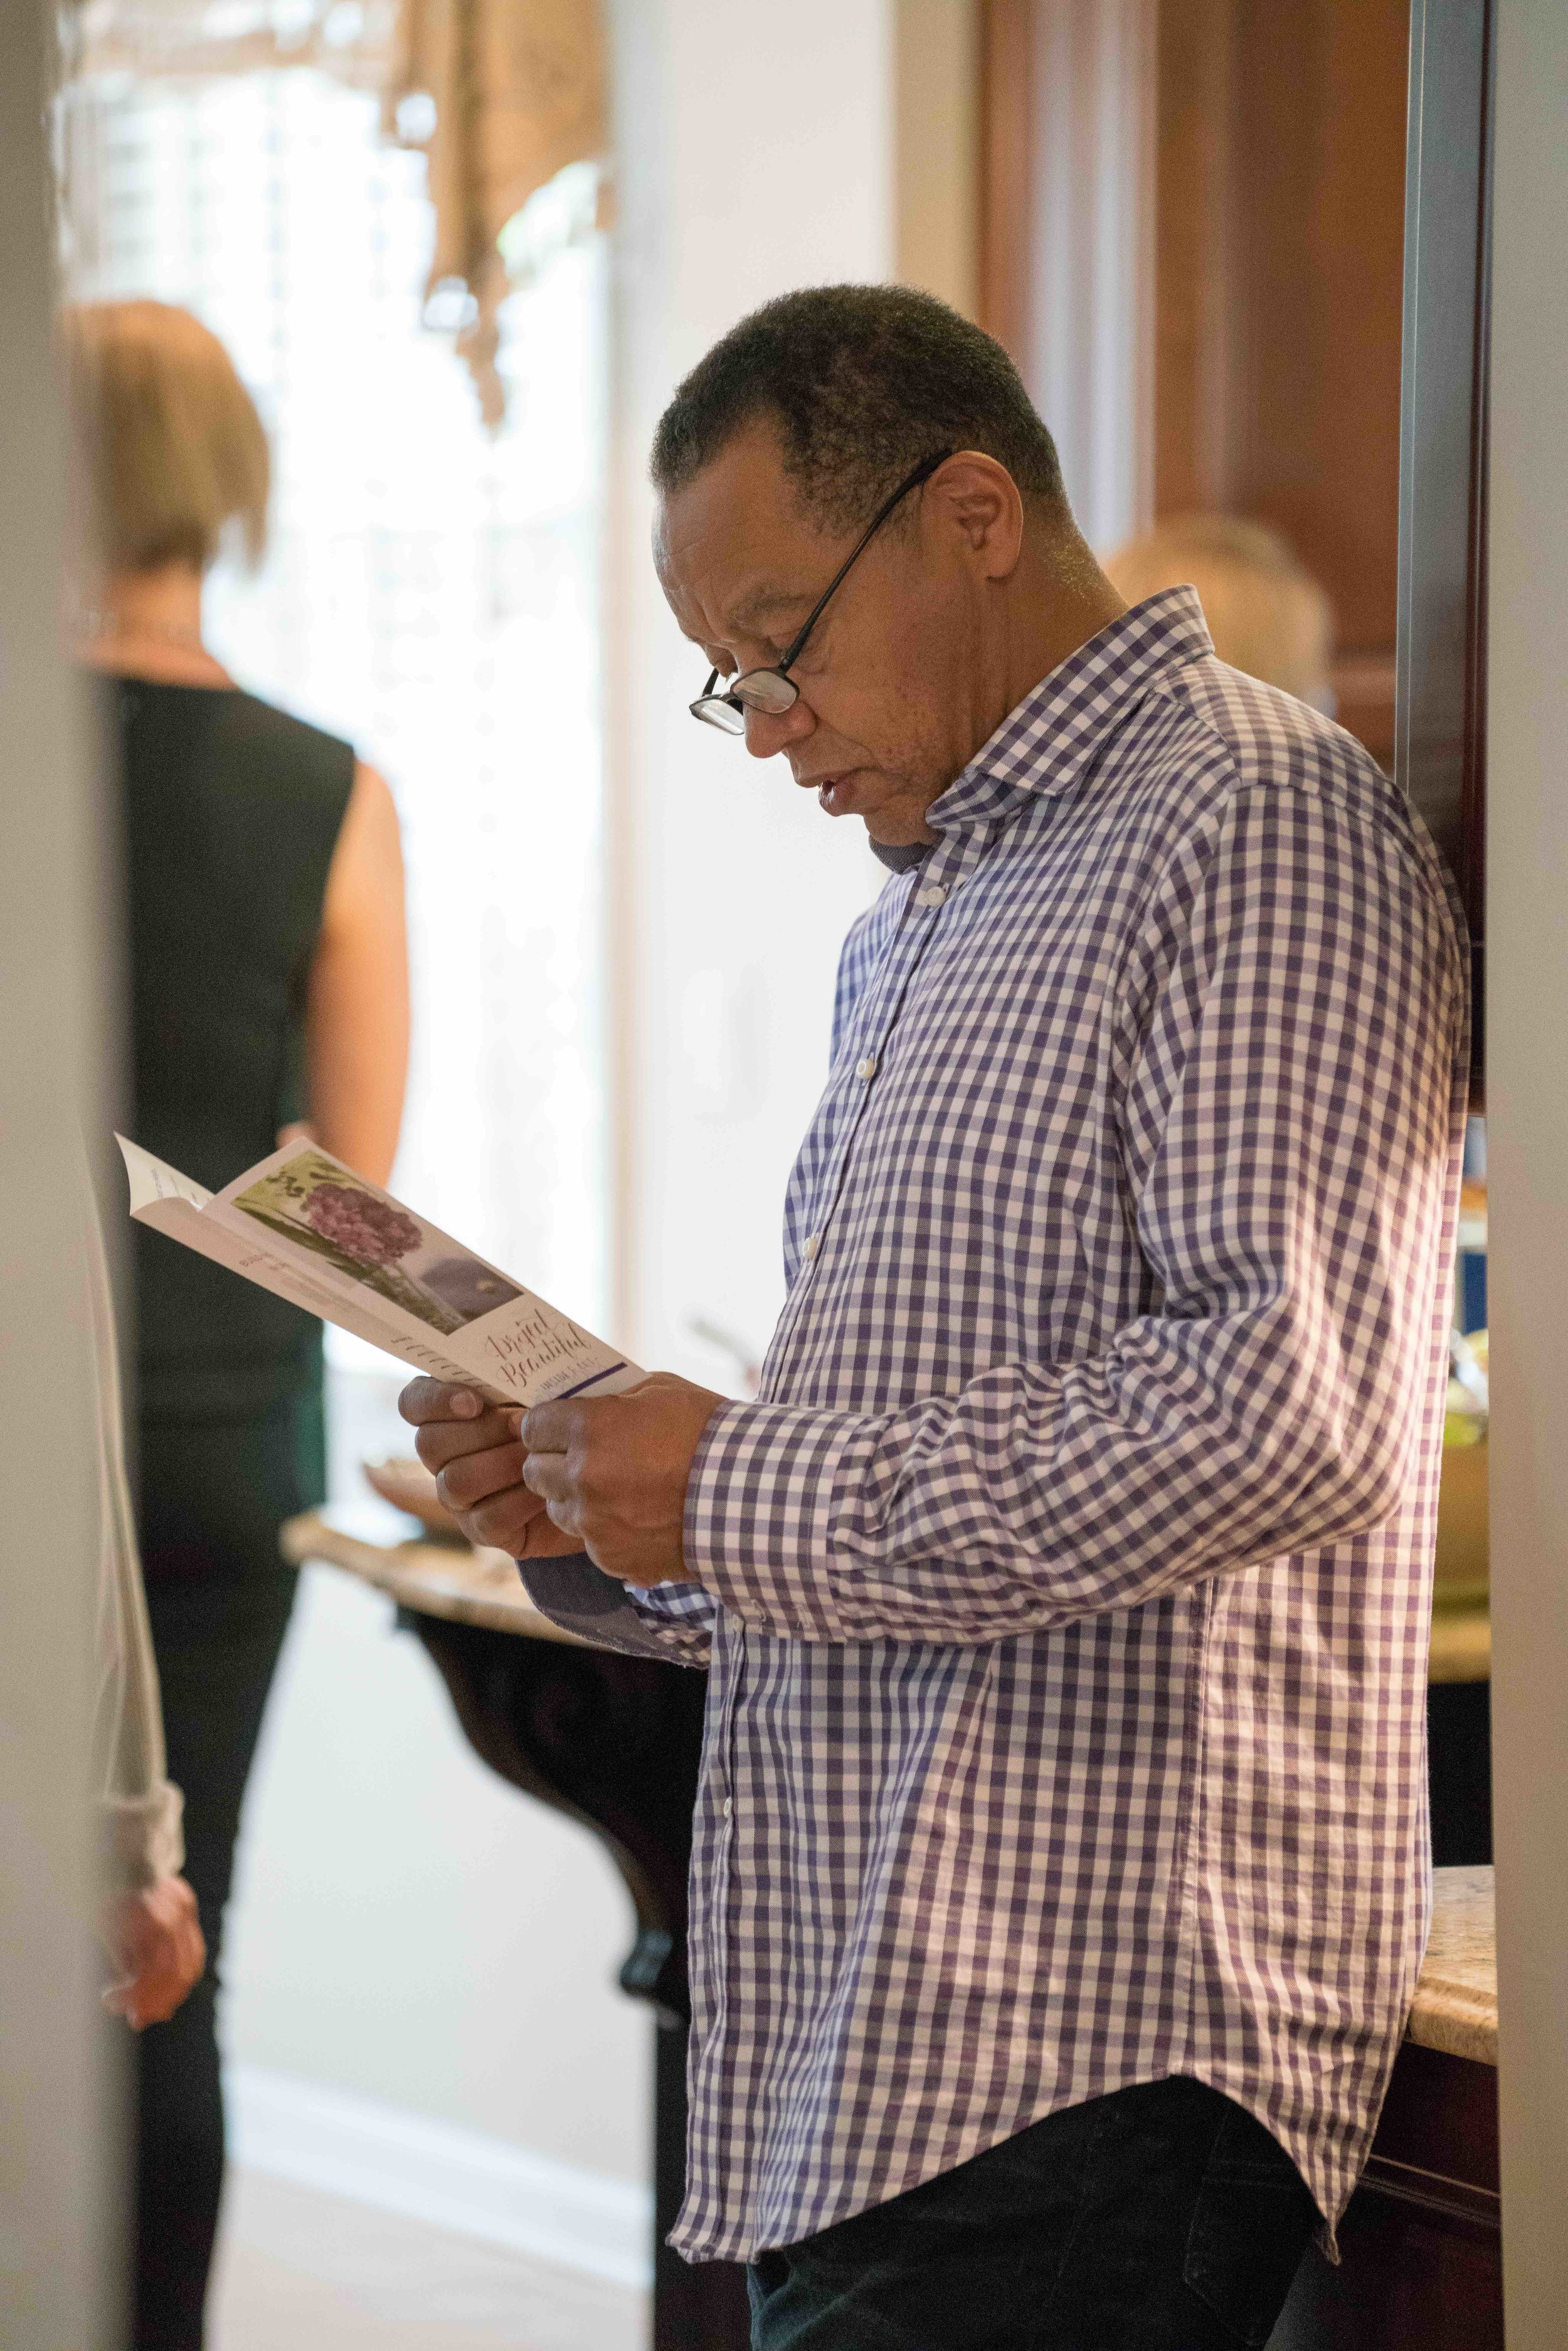 Board member Allison Martin's husband, Harold, reading up on Project Beautiful!